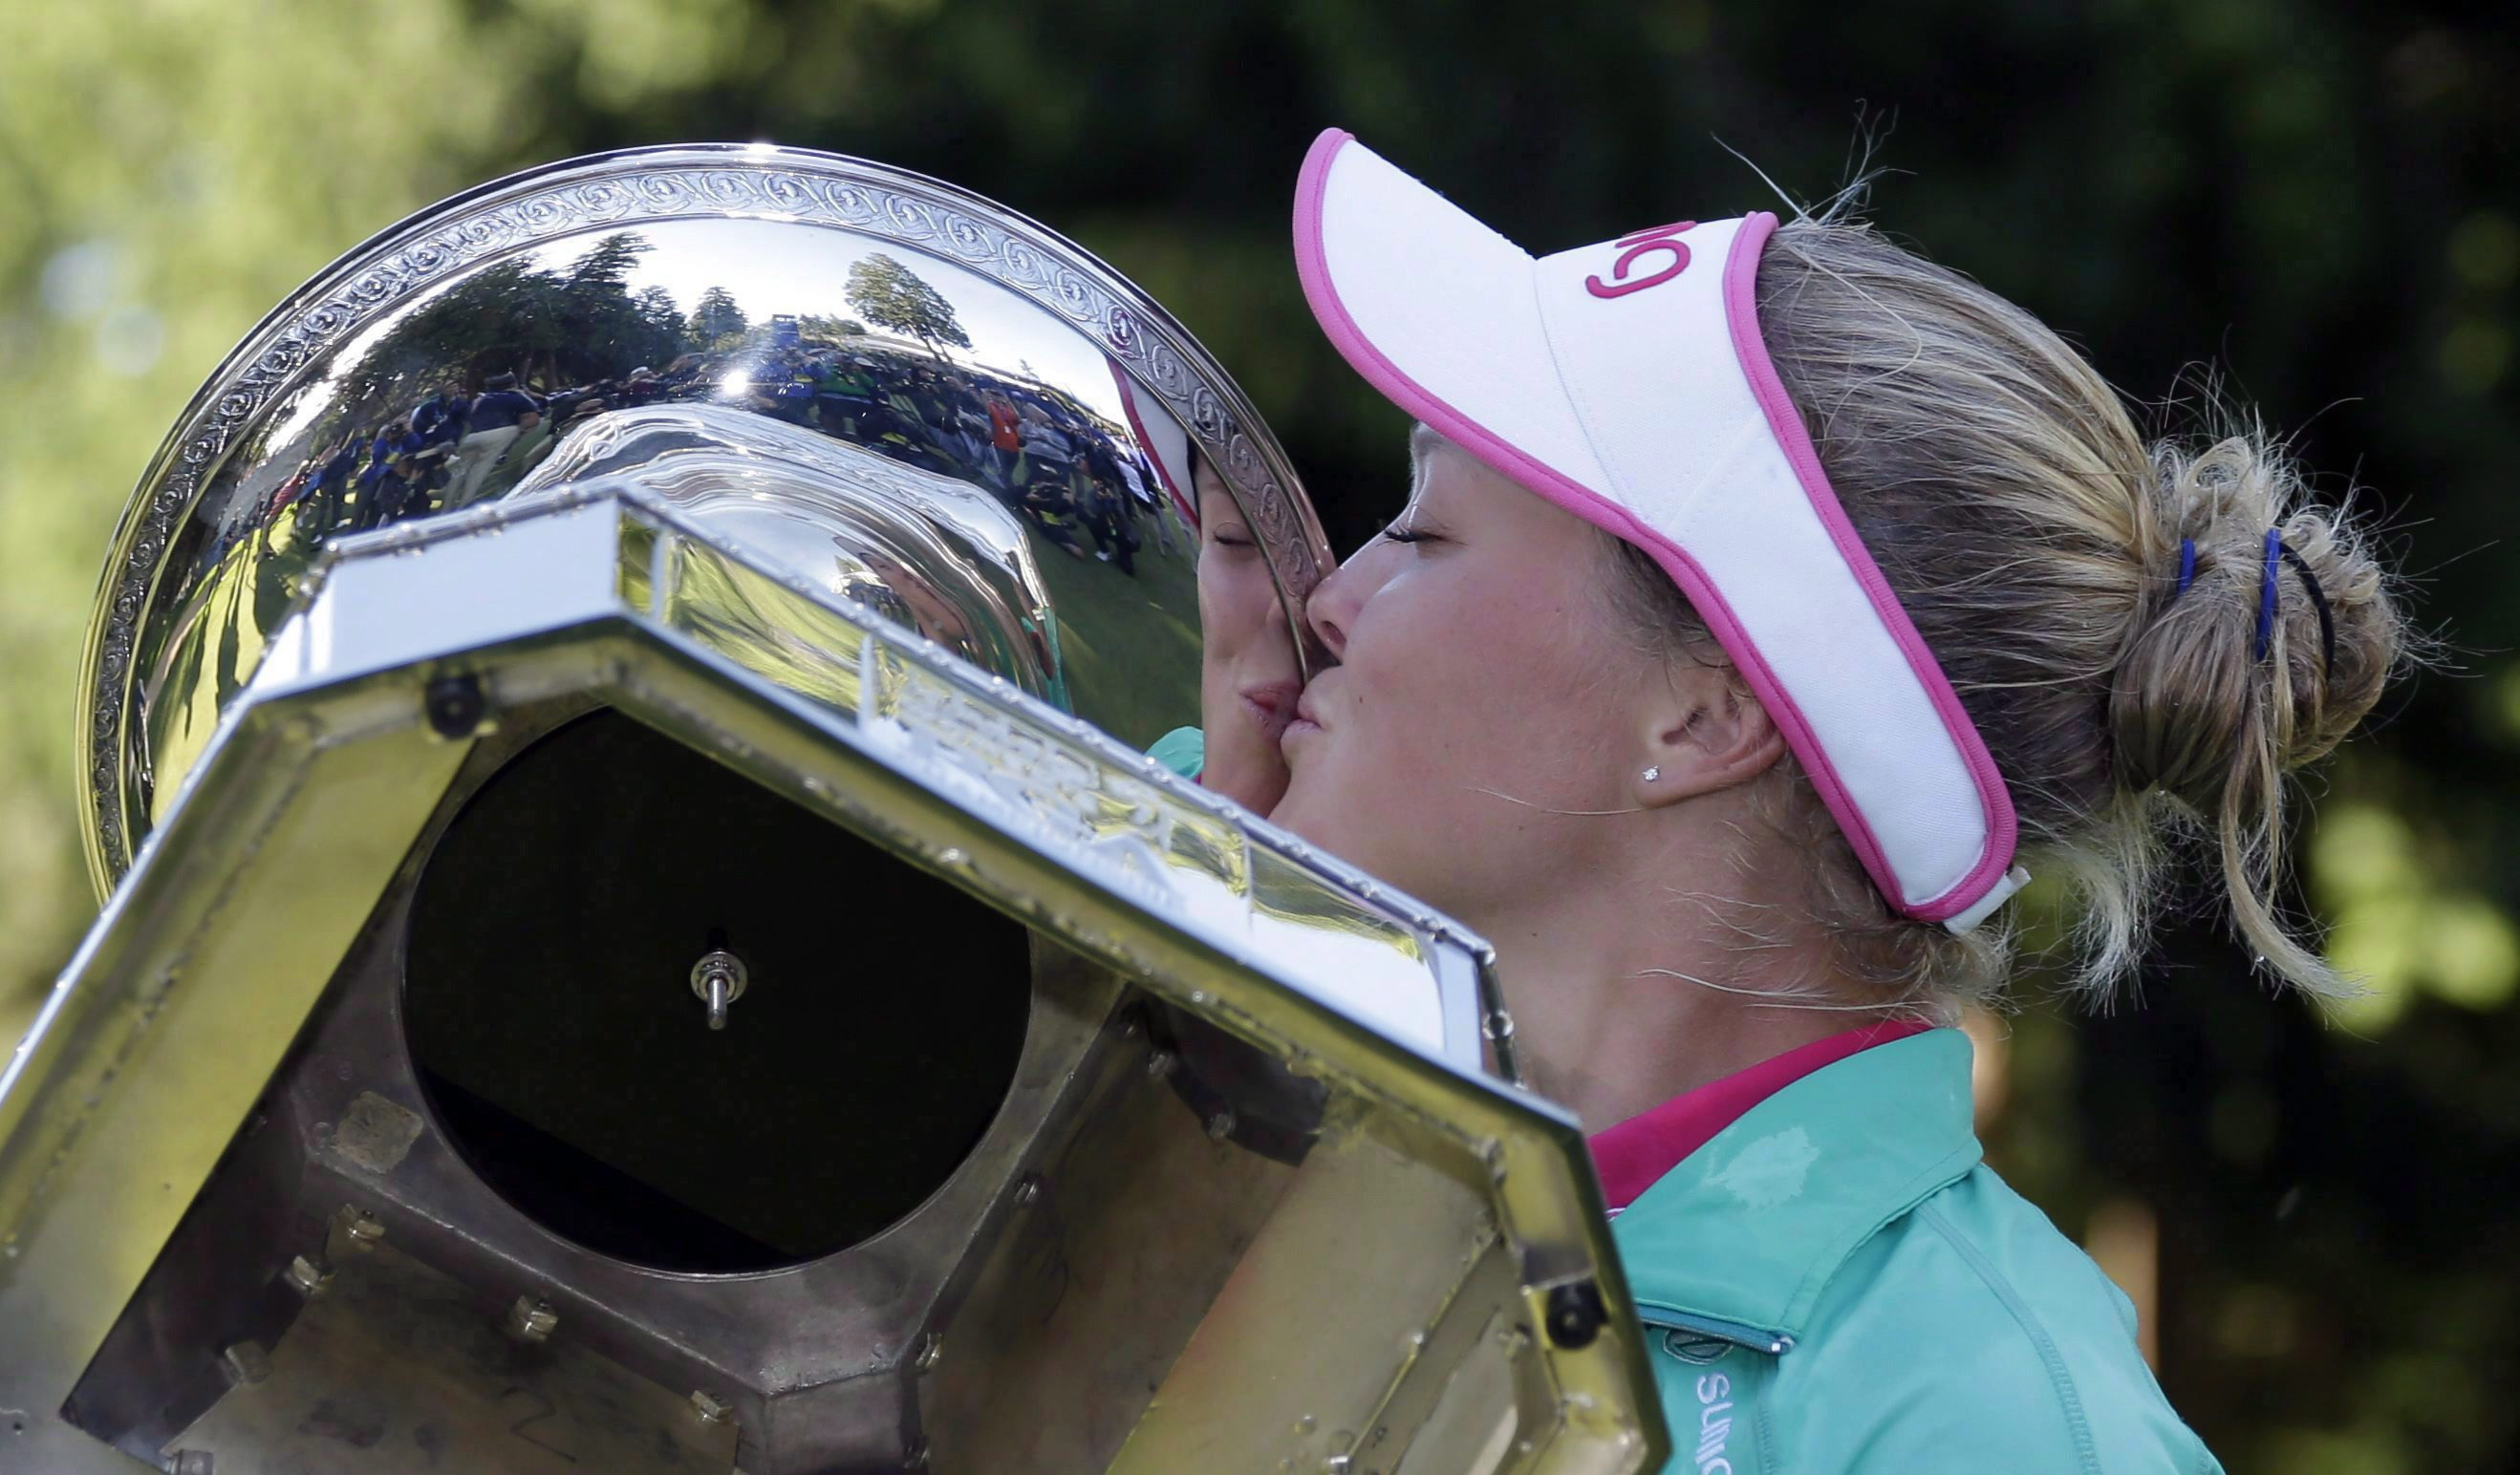 After being prompted by organizers, Brooke Henderson, of Canada, plants a kiss on the championship trophy after winning the Women's PGA Championship golf tournament at Sahalee Country Club on Sunday, June 12, 2016, in Sammamish, Washington. The 19-year-old from Smiths Falls, Ont., packed more into one season than some golfers experience over an entire career. THE CANADIAN PRESS/AP, Elaine Thompson